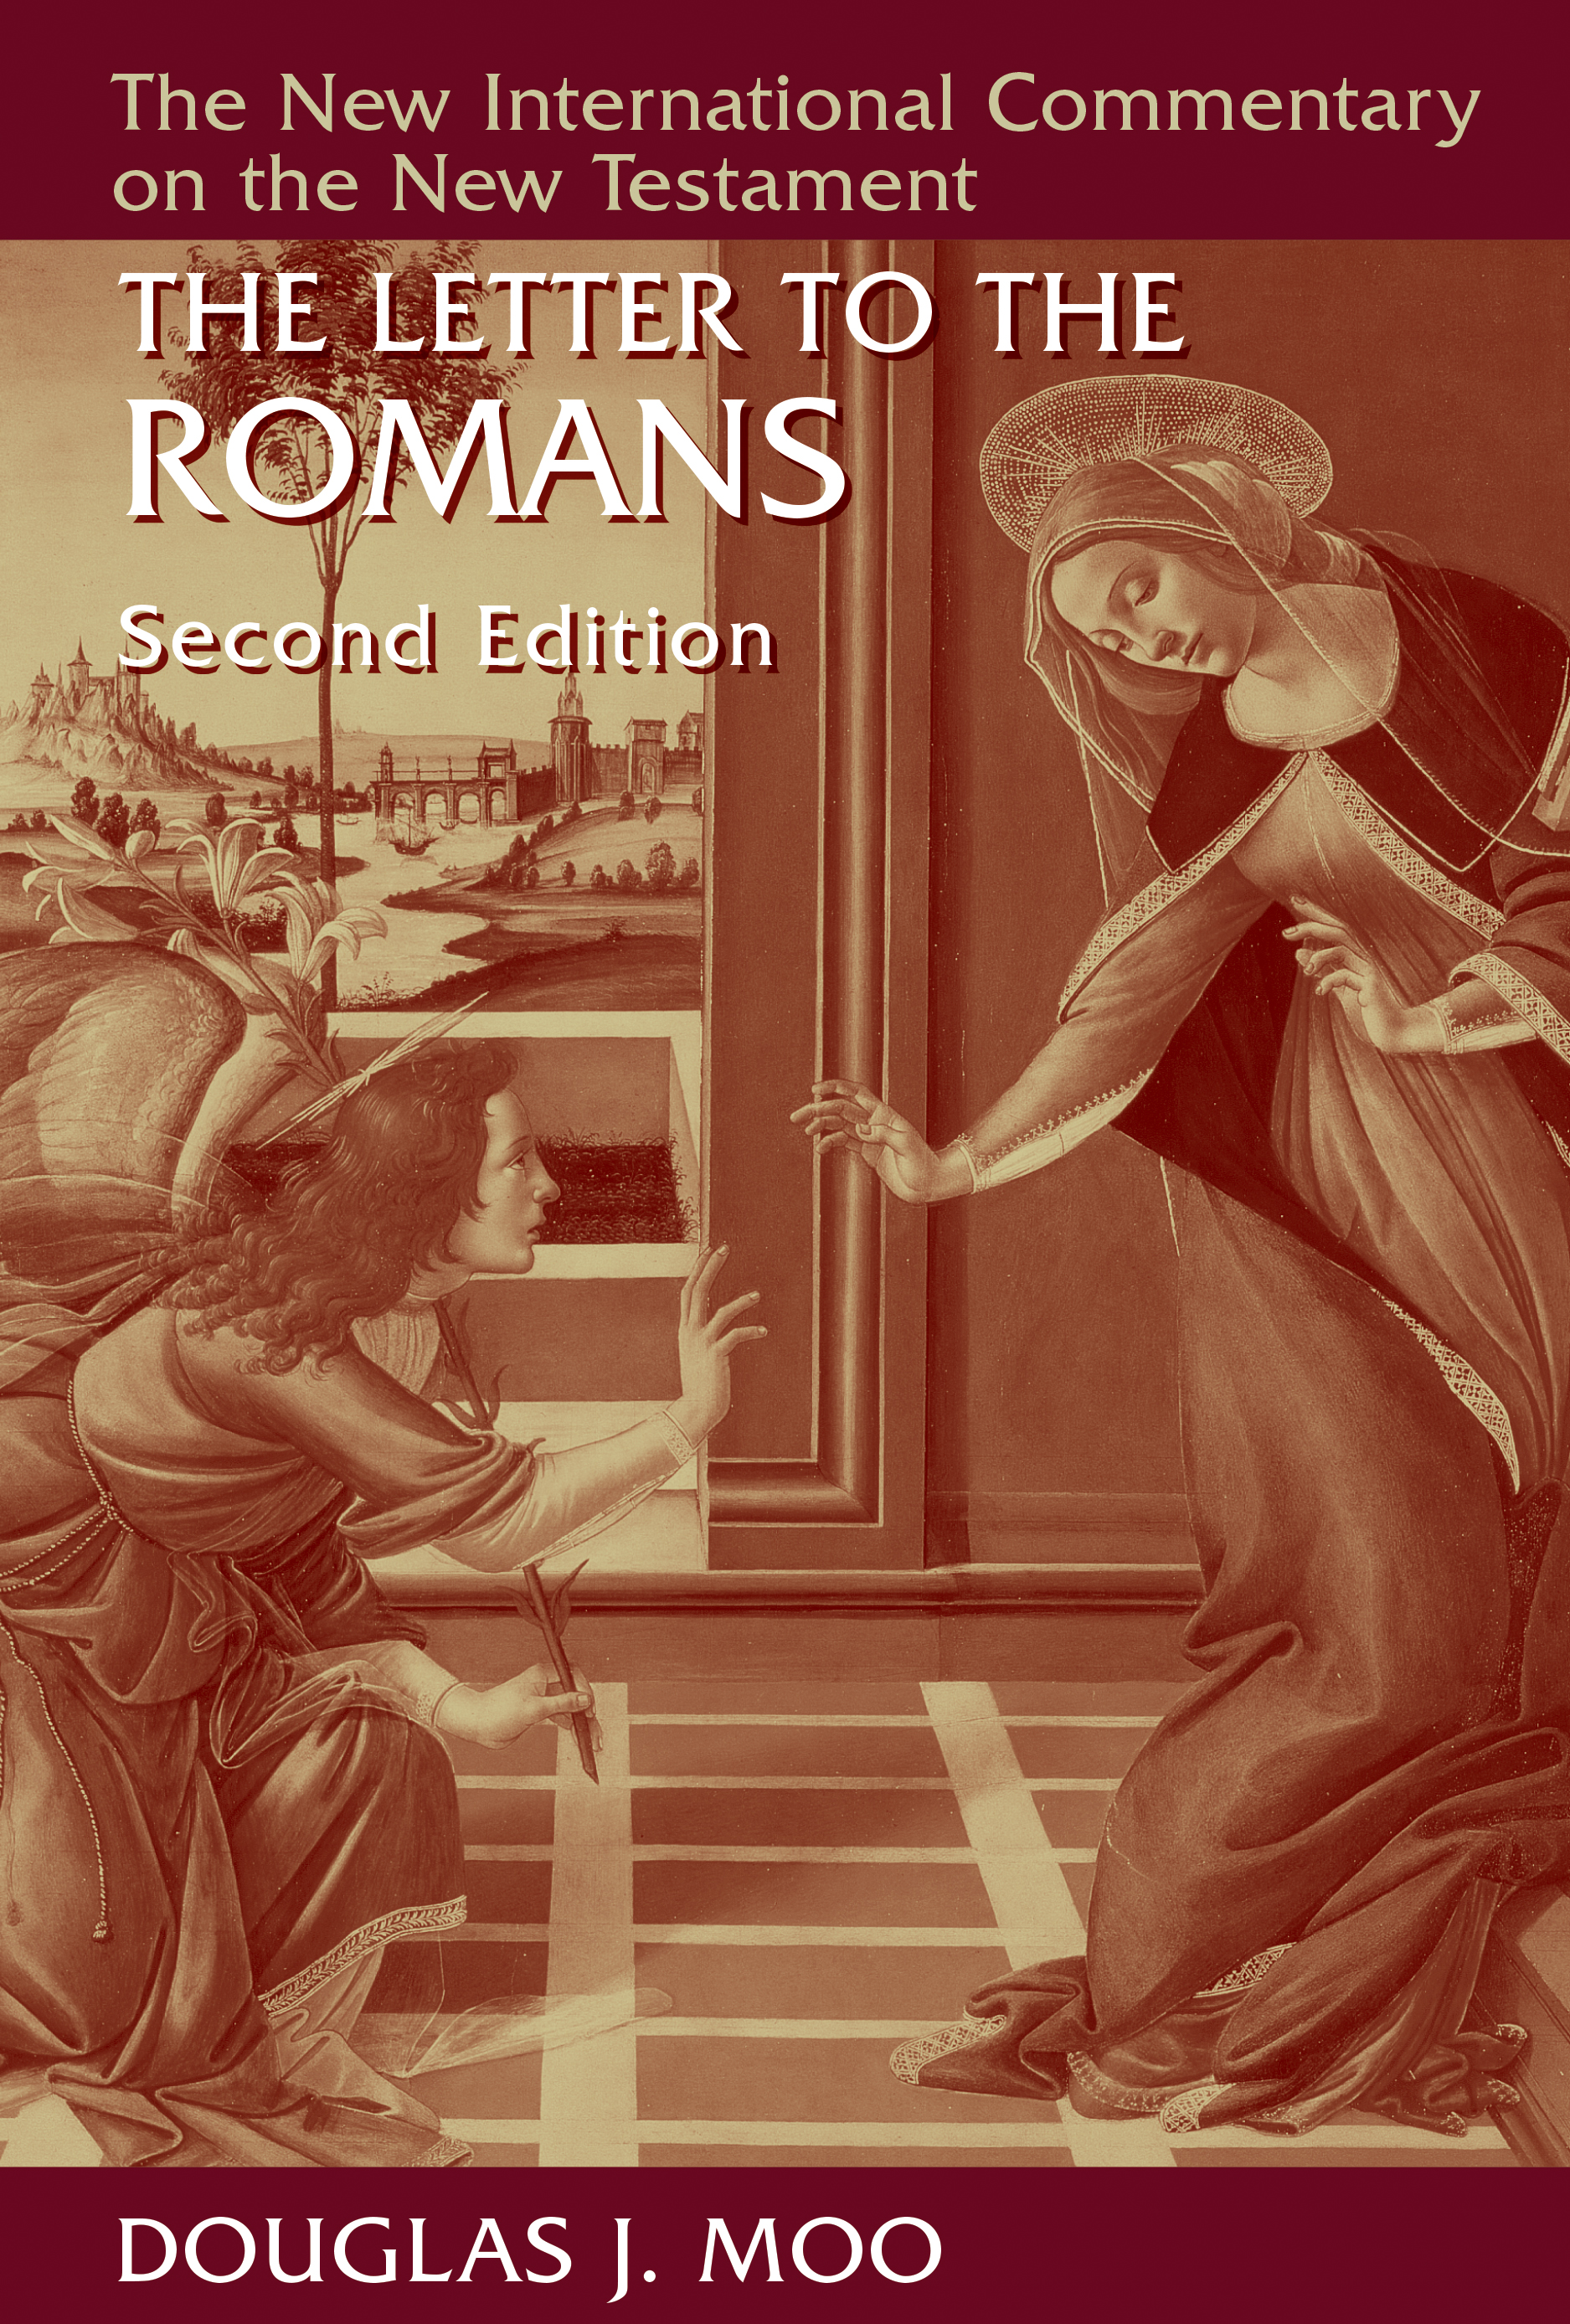 Book Review: Douglas J. Moo, Romans. Second Edition (NICNT)